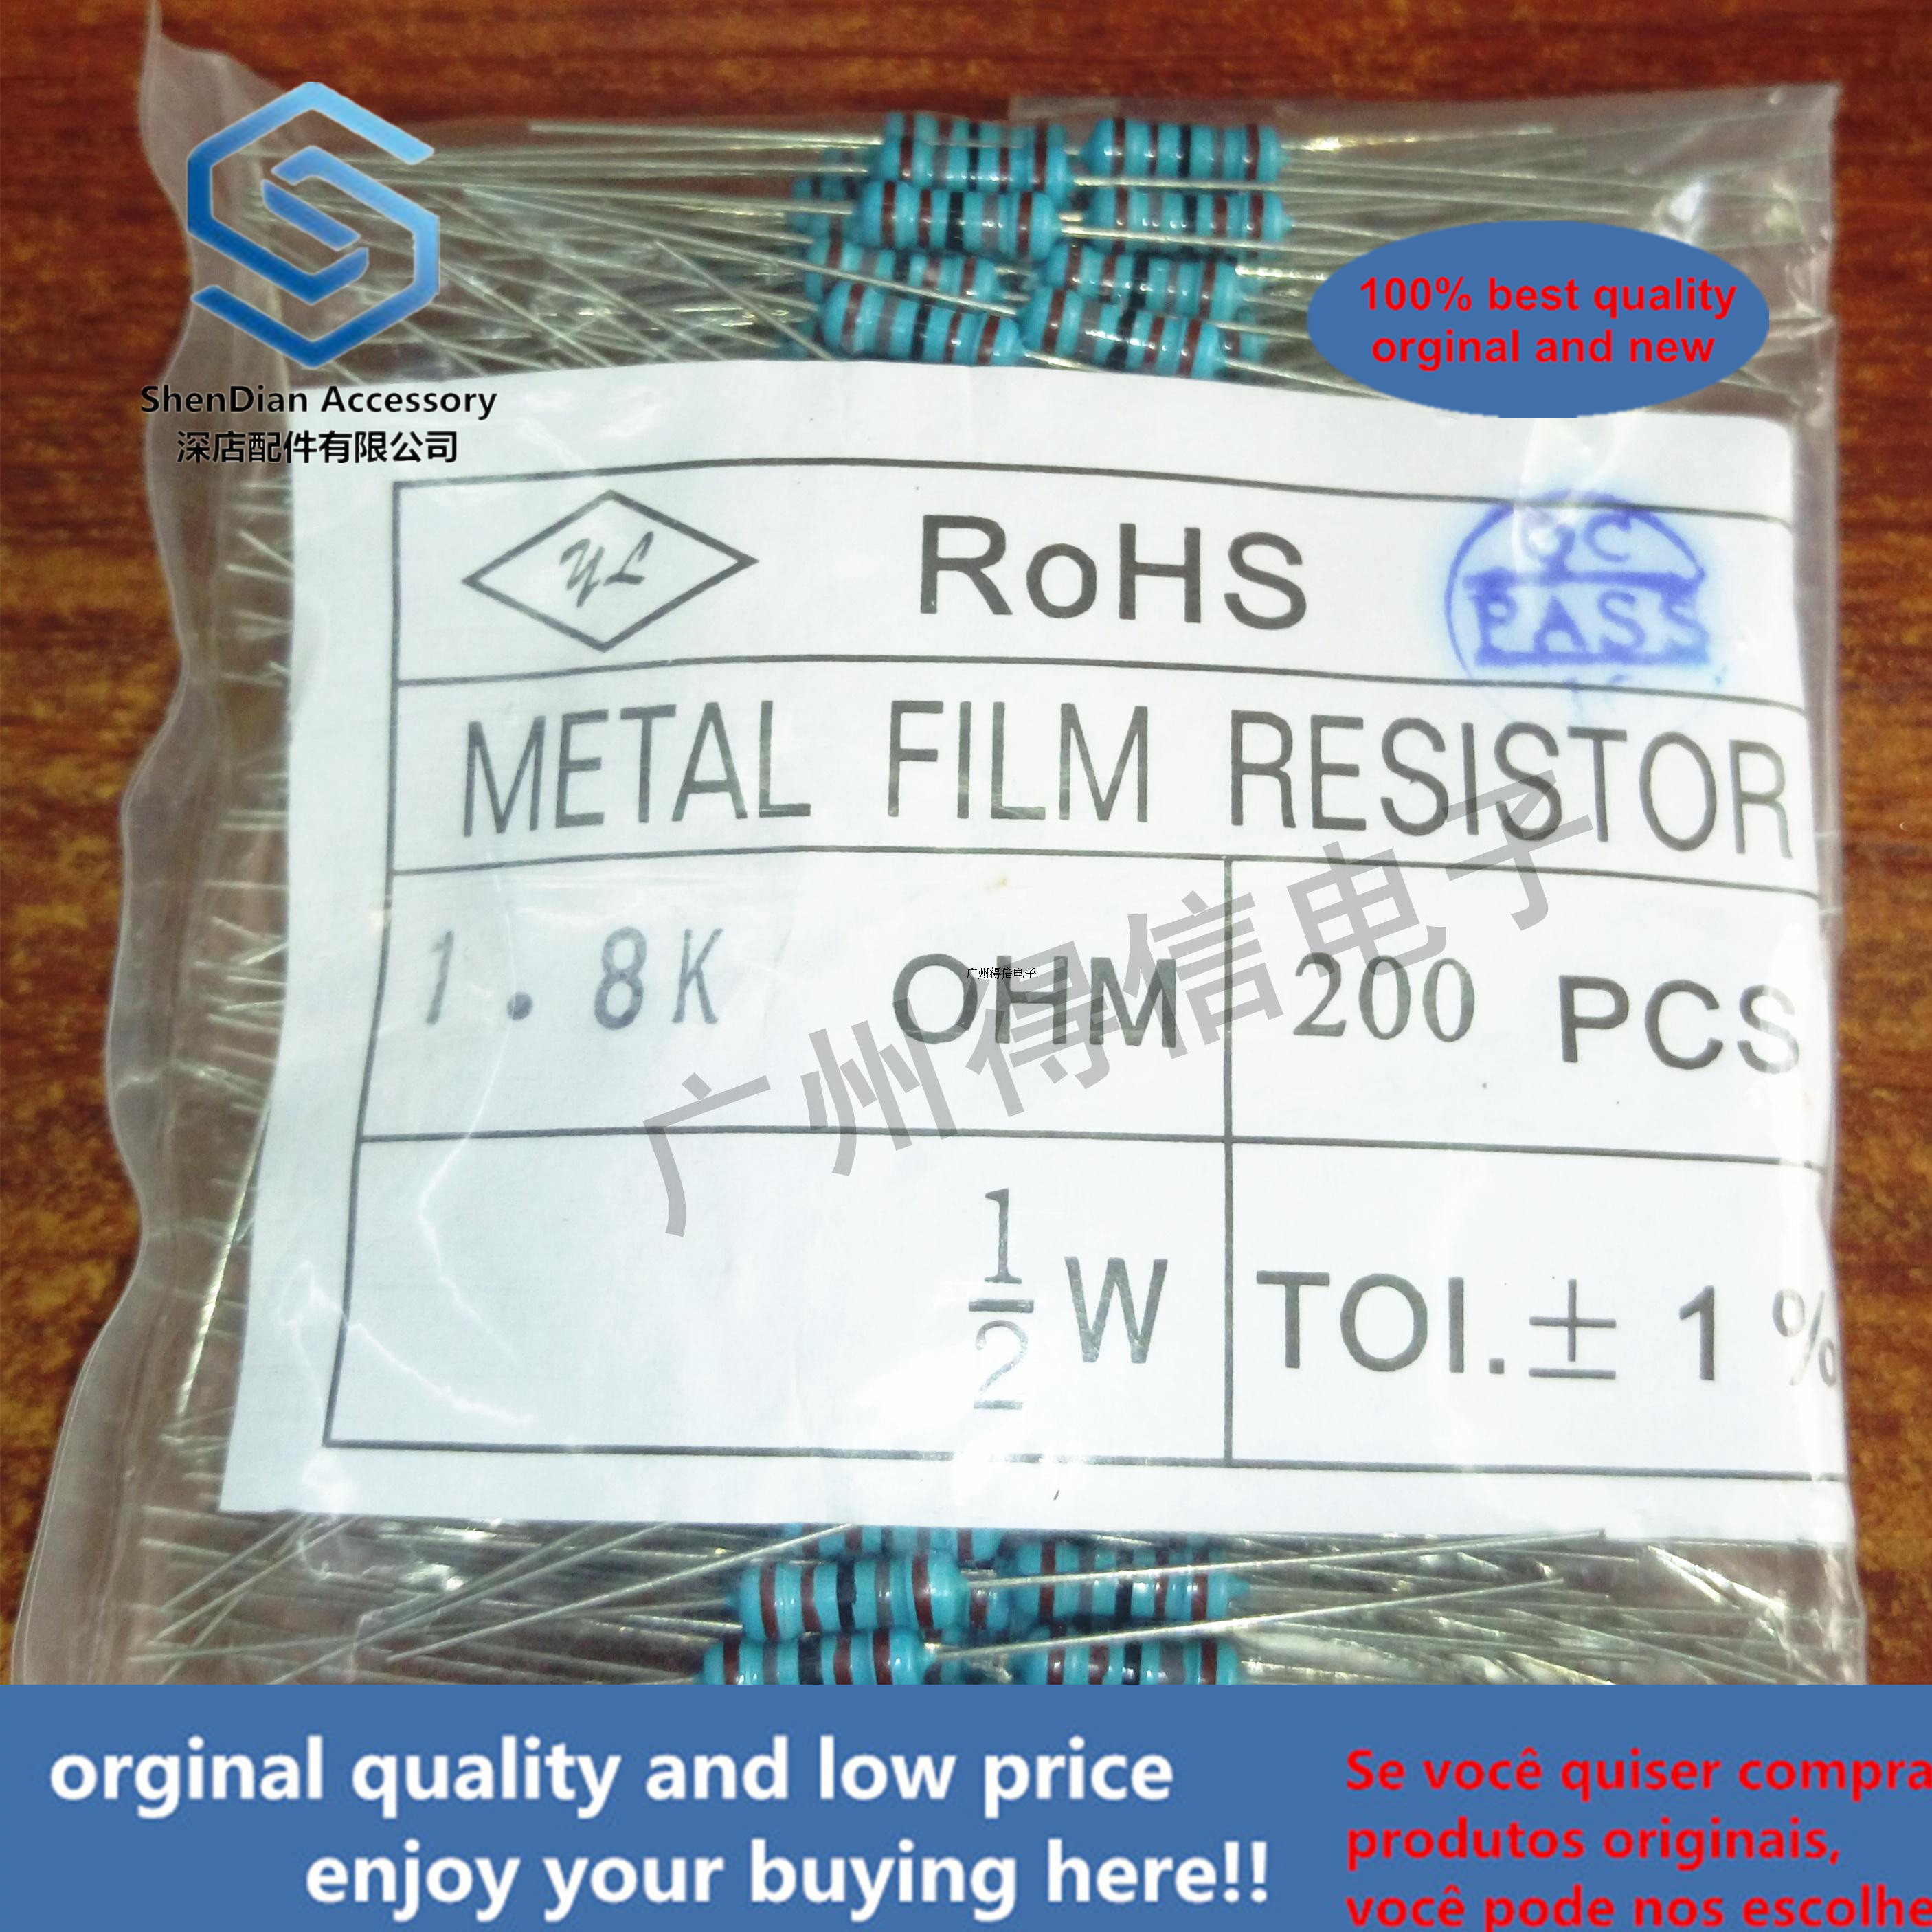 200pcs 1 / 2W 1K 1000 Euro 1% Brand New Metal Film Iron Feet Resistor Bag 200 Pcs Per Pack